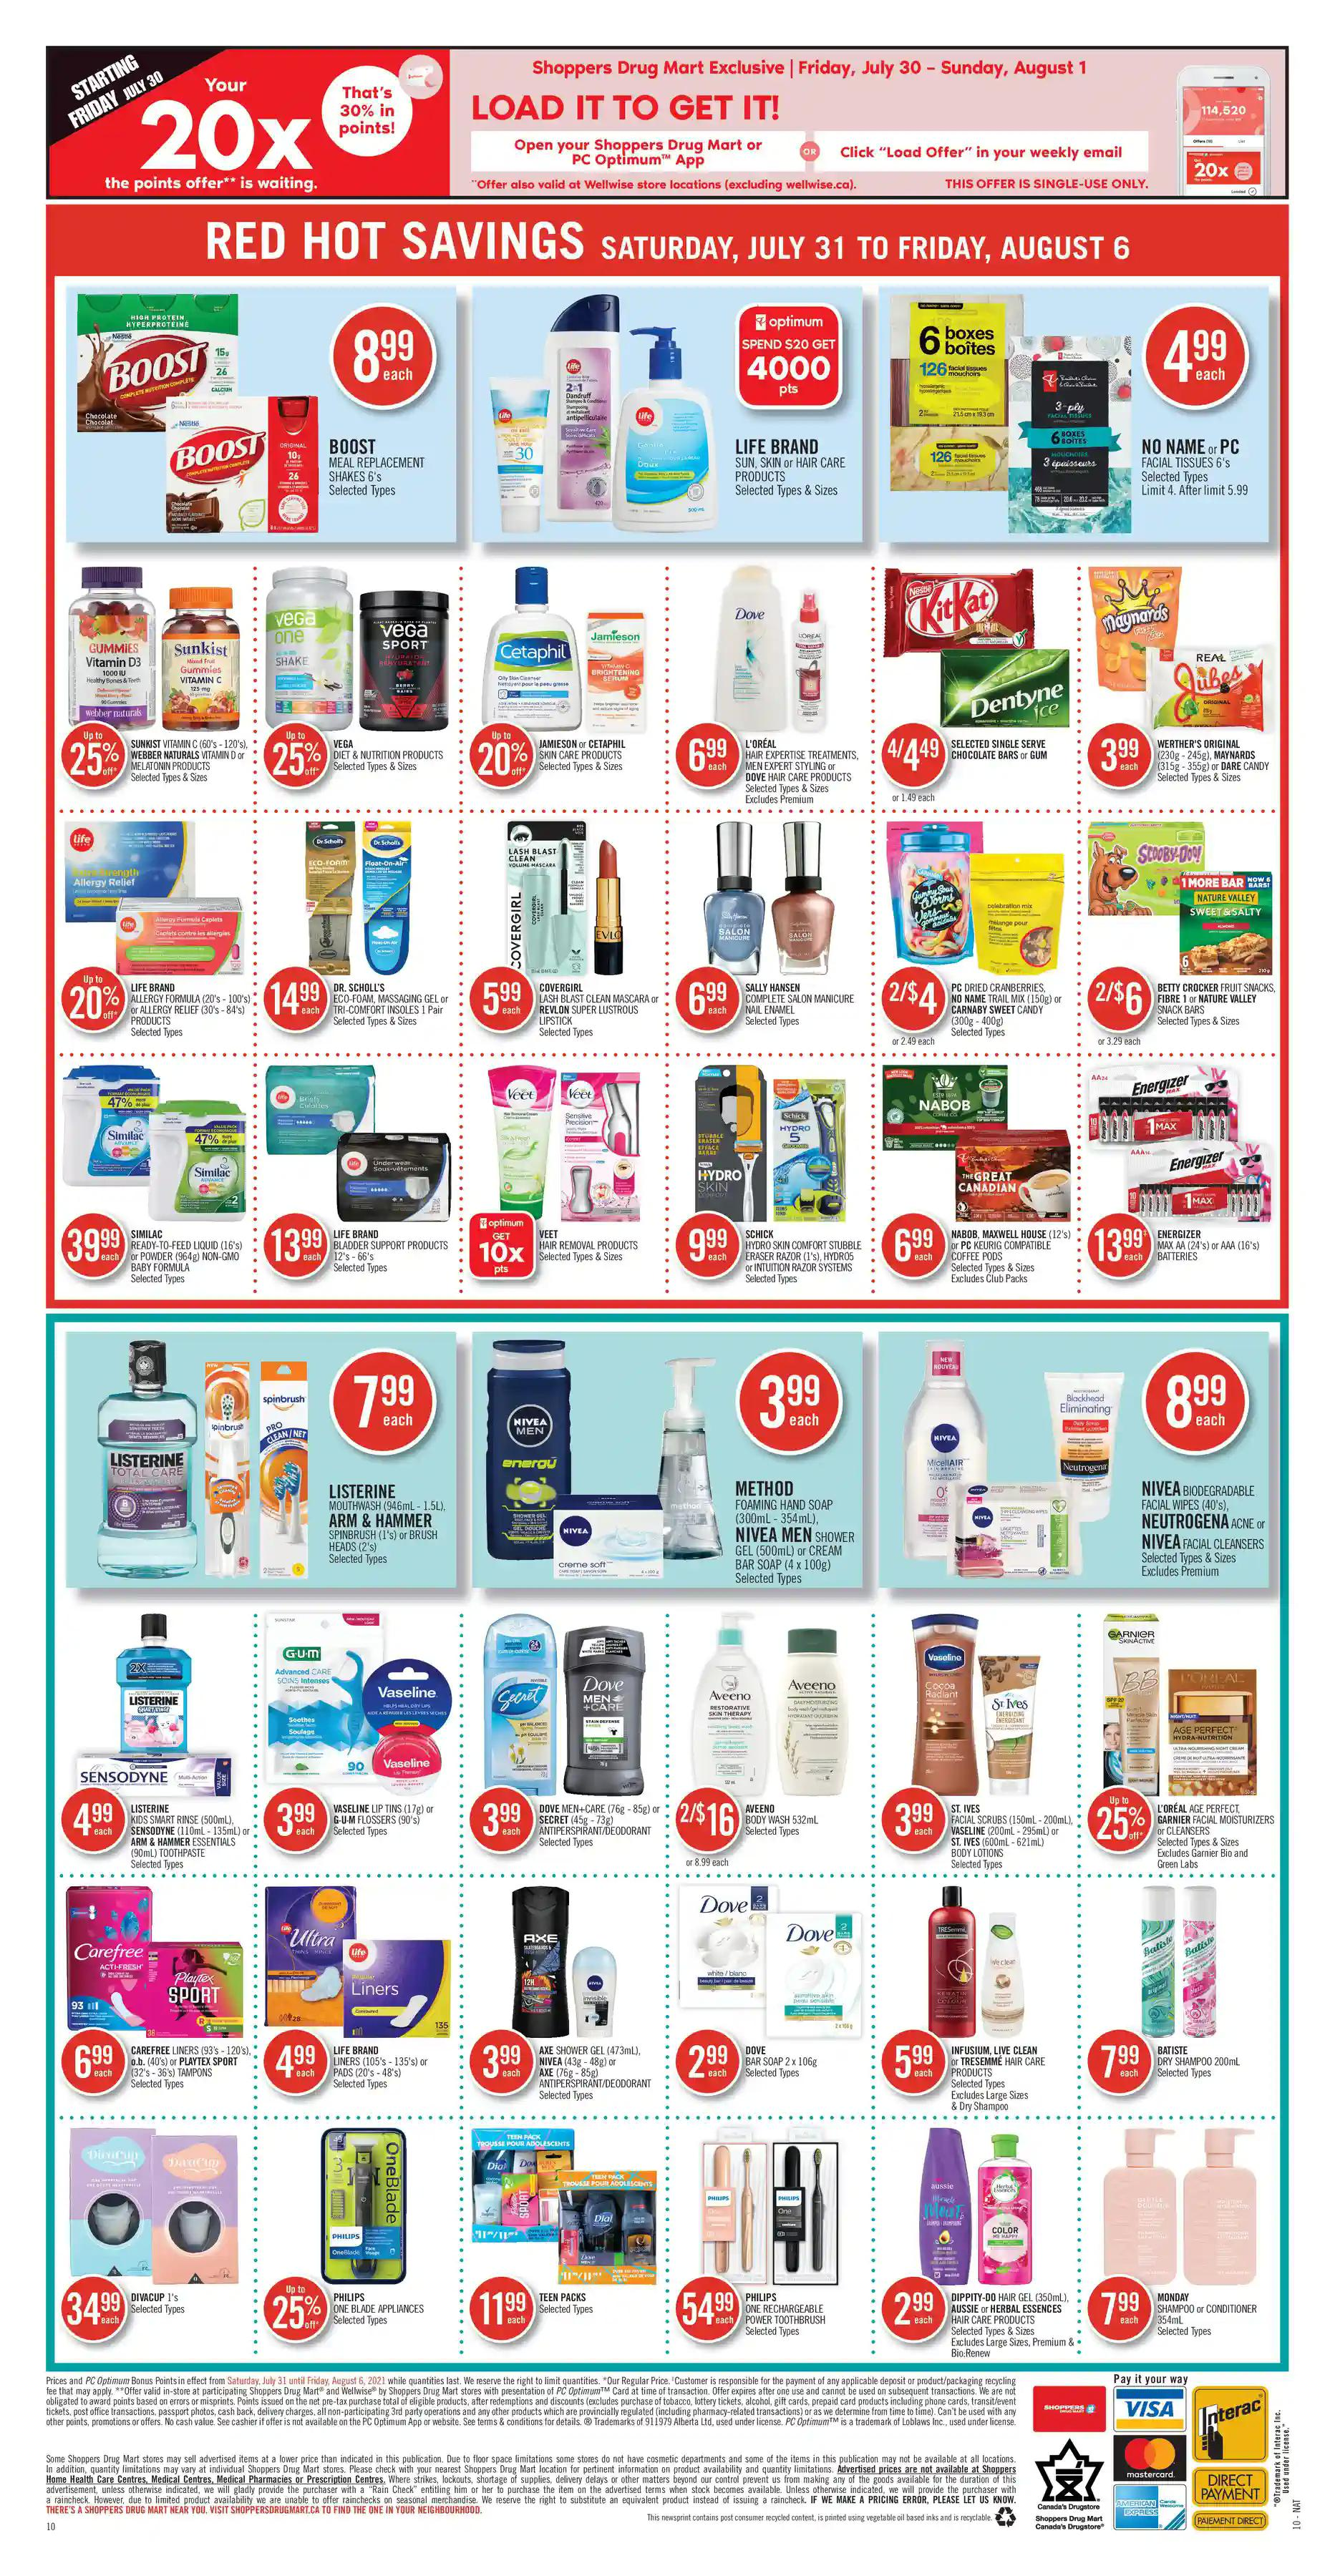 Shoppers Drug Mart - Weekly Flyer Specials - Page 16